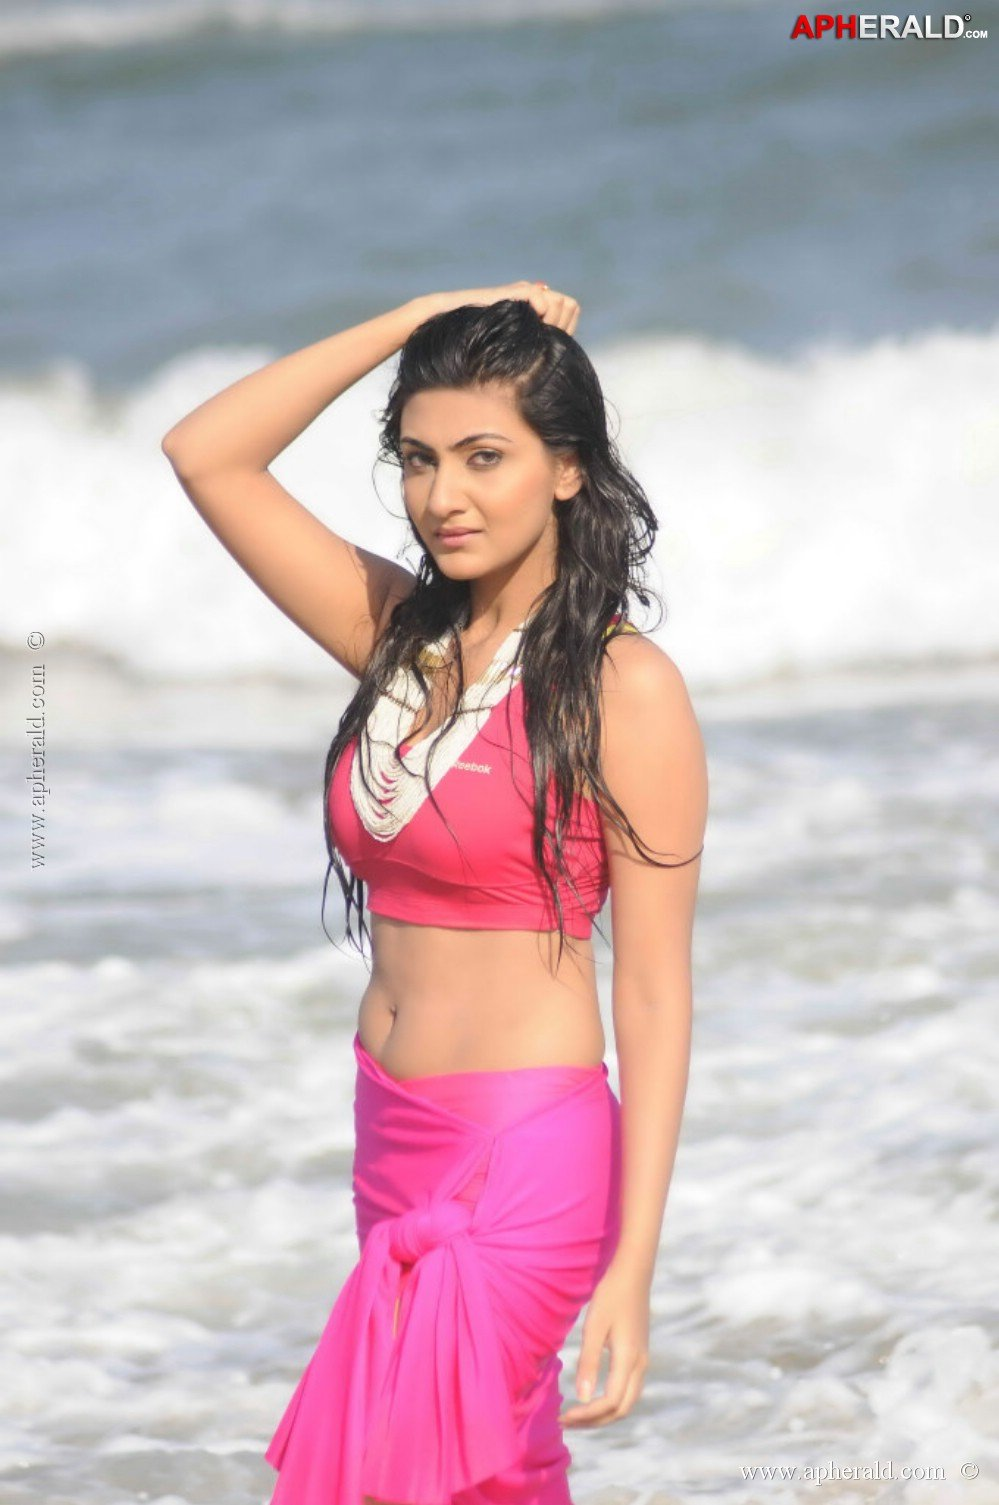 Actress wet photos - Google Search 4th one-Indian Wet Photography Indian actress wet photo gallery